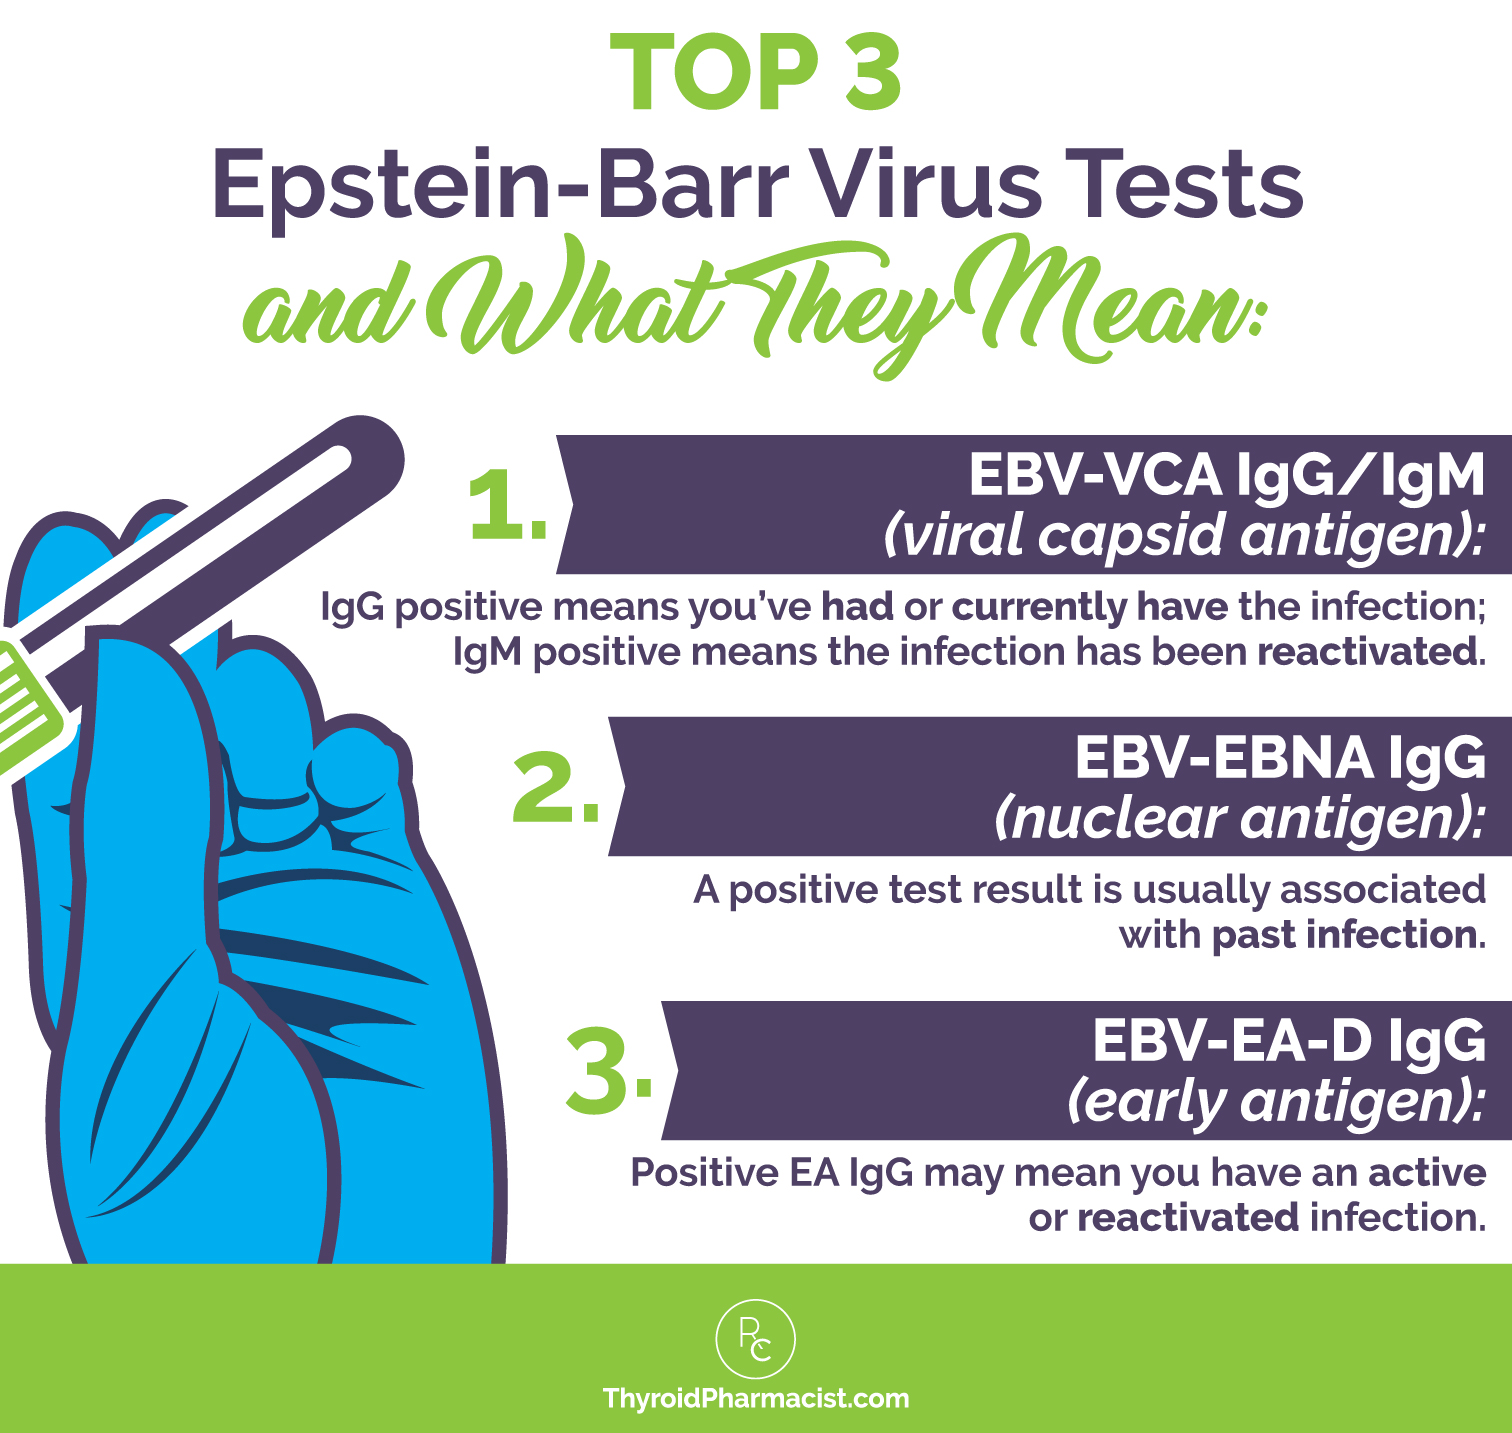 EBV-EA-D IgG (early antigen): Positive EA IgG may mean you have an active  or reactivated infection.